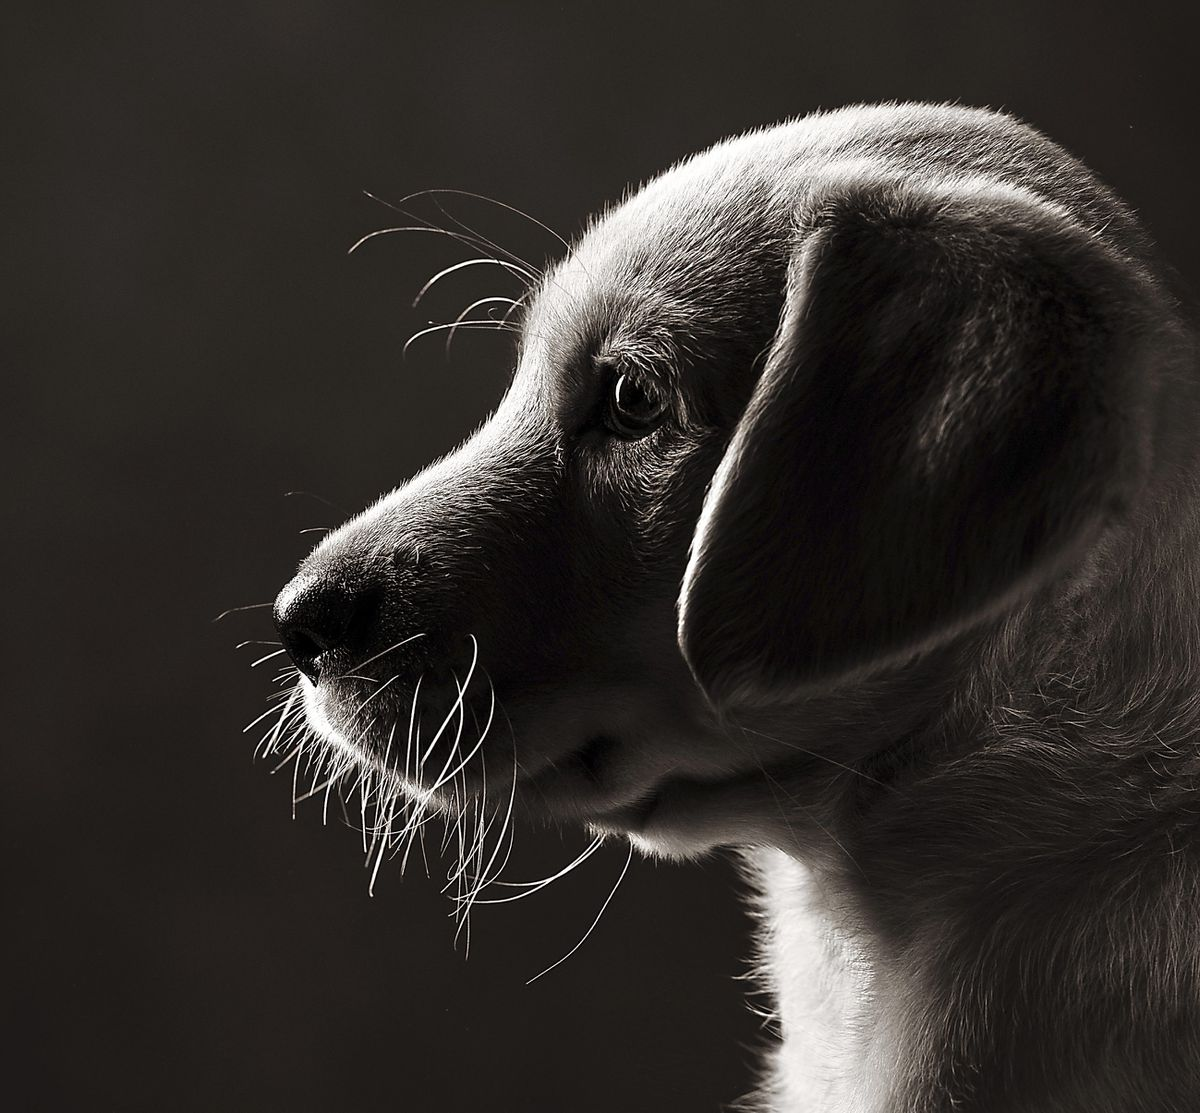 Jane's puppy photograph won praise from the Master Photographers Association